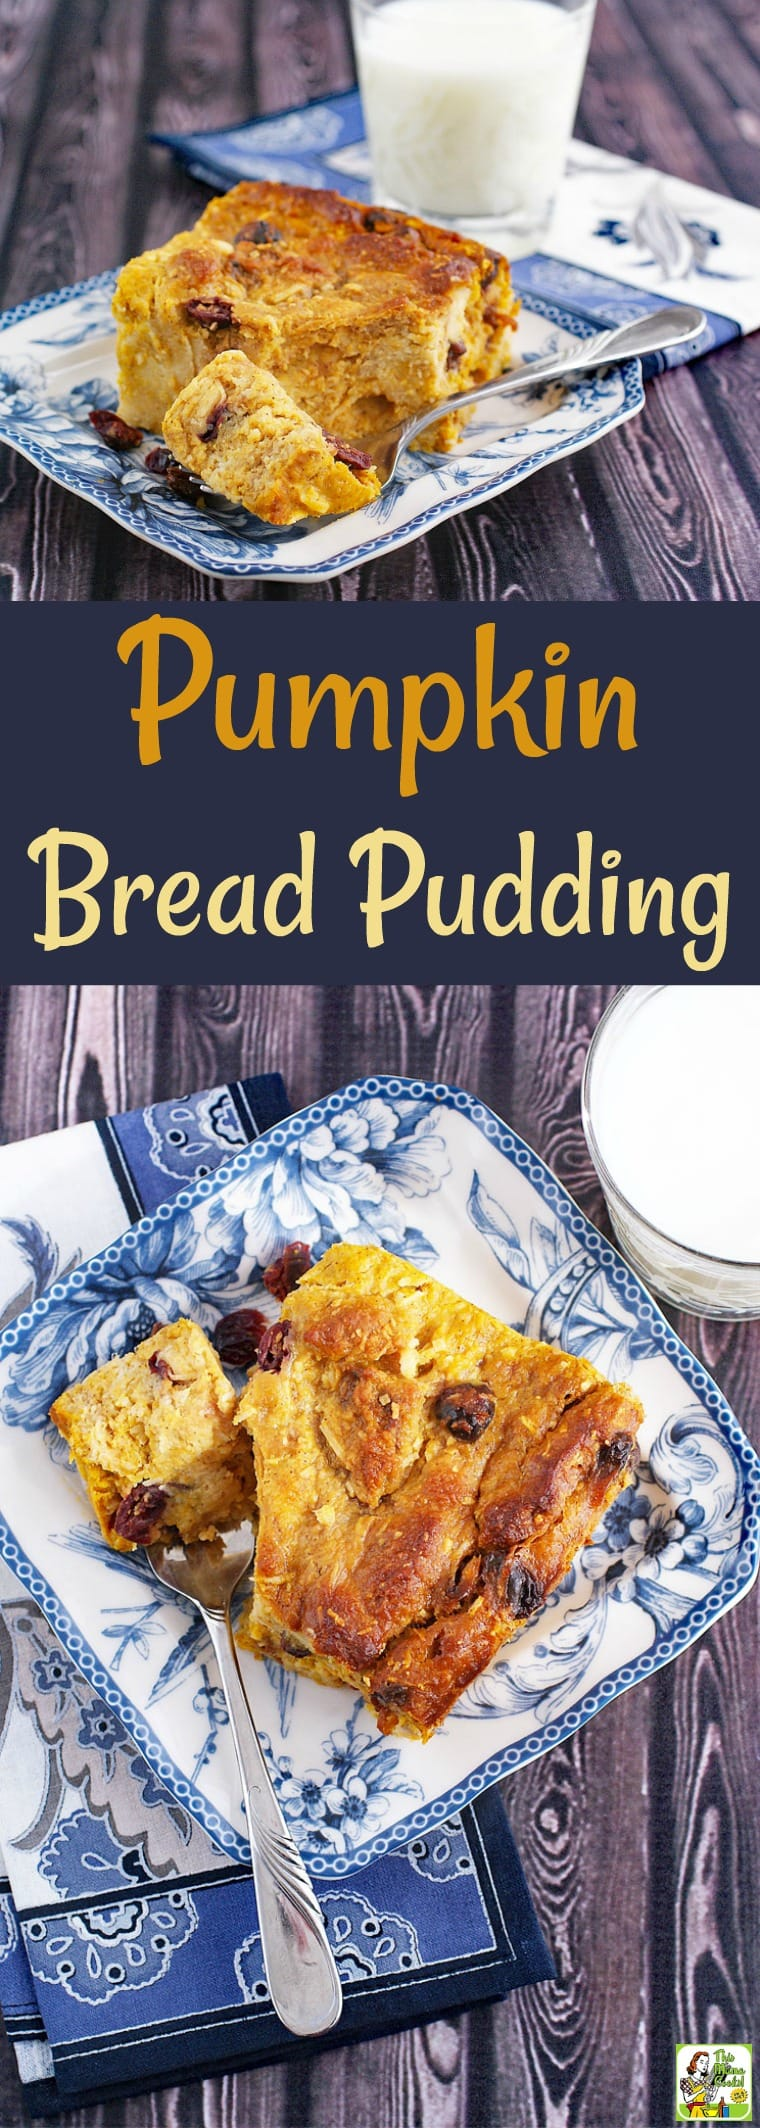 The Best Pumpkin Bread Pudding Ever! This pumpkin cranberry bread pudding can be made gluten free and dairy free. Make a dish of this easy pumpkin bread pudding recipe for Thanksgiving breakfast or brunch. #recipe #easy #recipeoftheday #healthyrecipes #glutenfree #easyrecipes #dessert #dairyfree #pumpkin #cranberry #coconut #thanksgiving #breadpudding #pumpkindessert #pumpkinrecipe #pumpkinspice